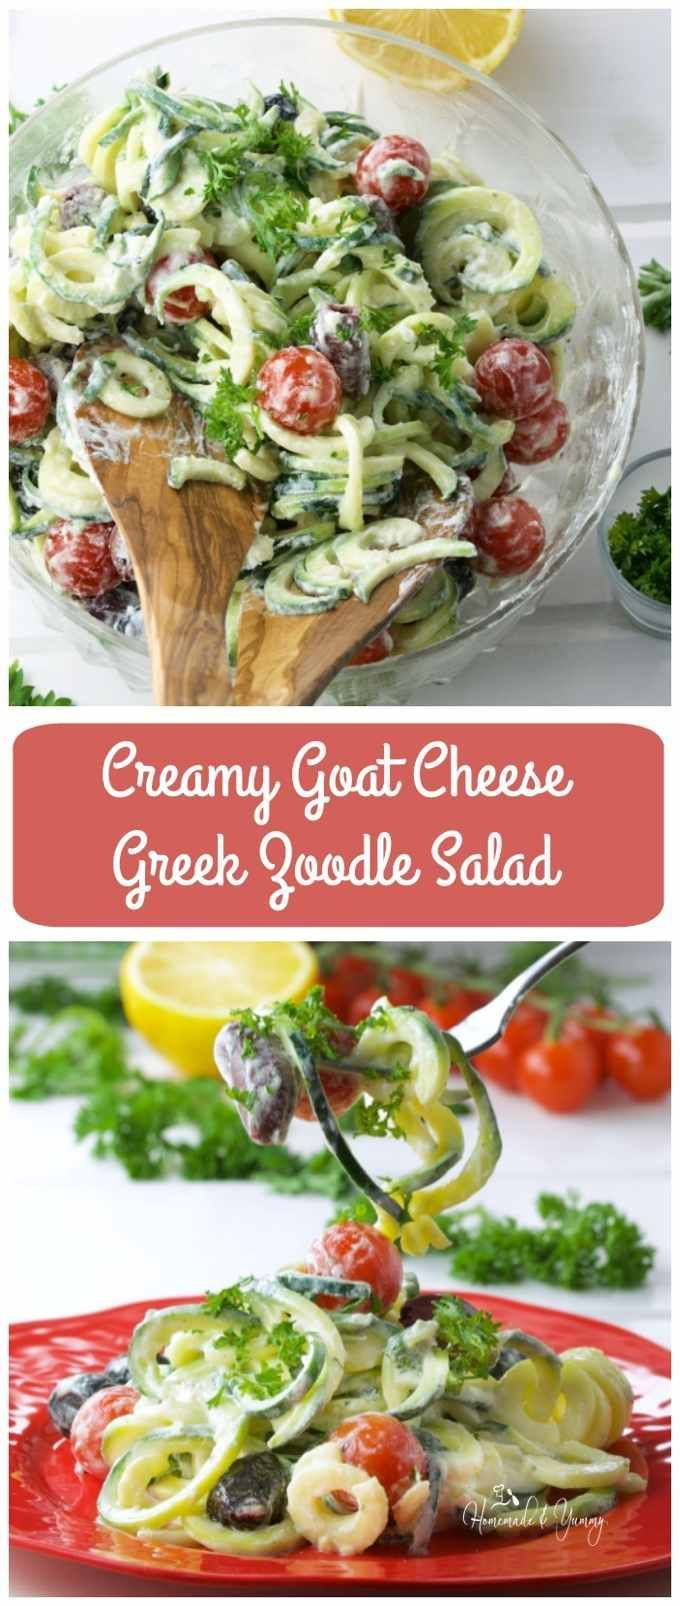 Creamy Goat Cheese Greek Zoodle Salad is fun to make. Bursting with Mediterranean flavours. Makes the perfect side to any meal, especially in grilling season.   homemadeandyummy.com